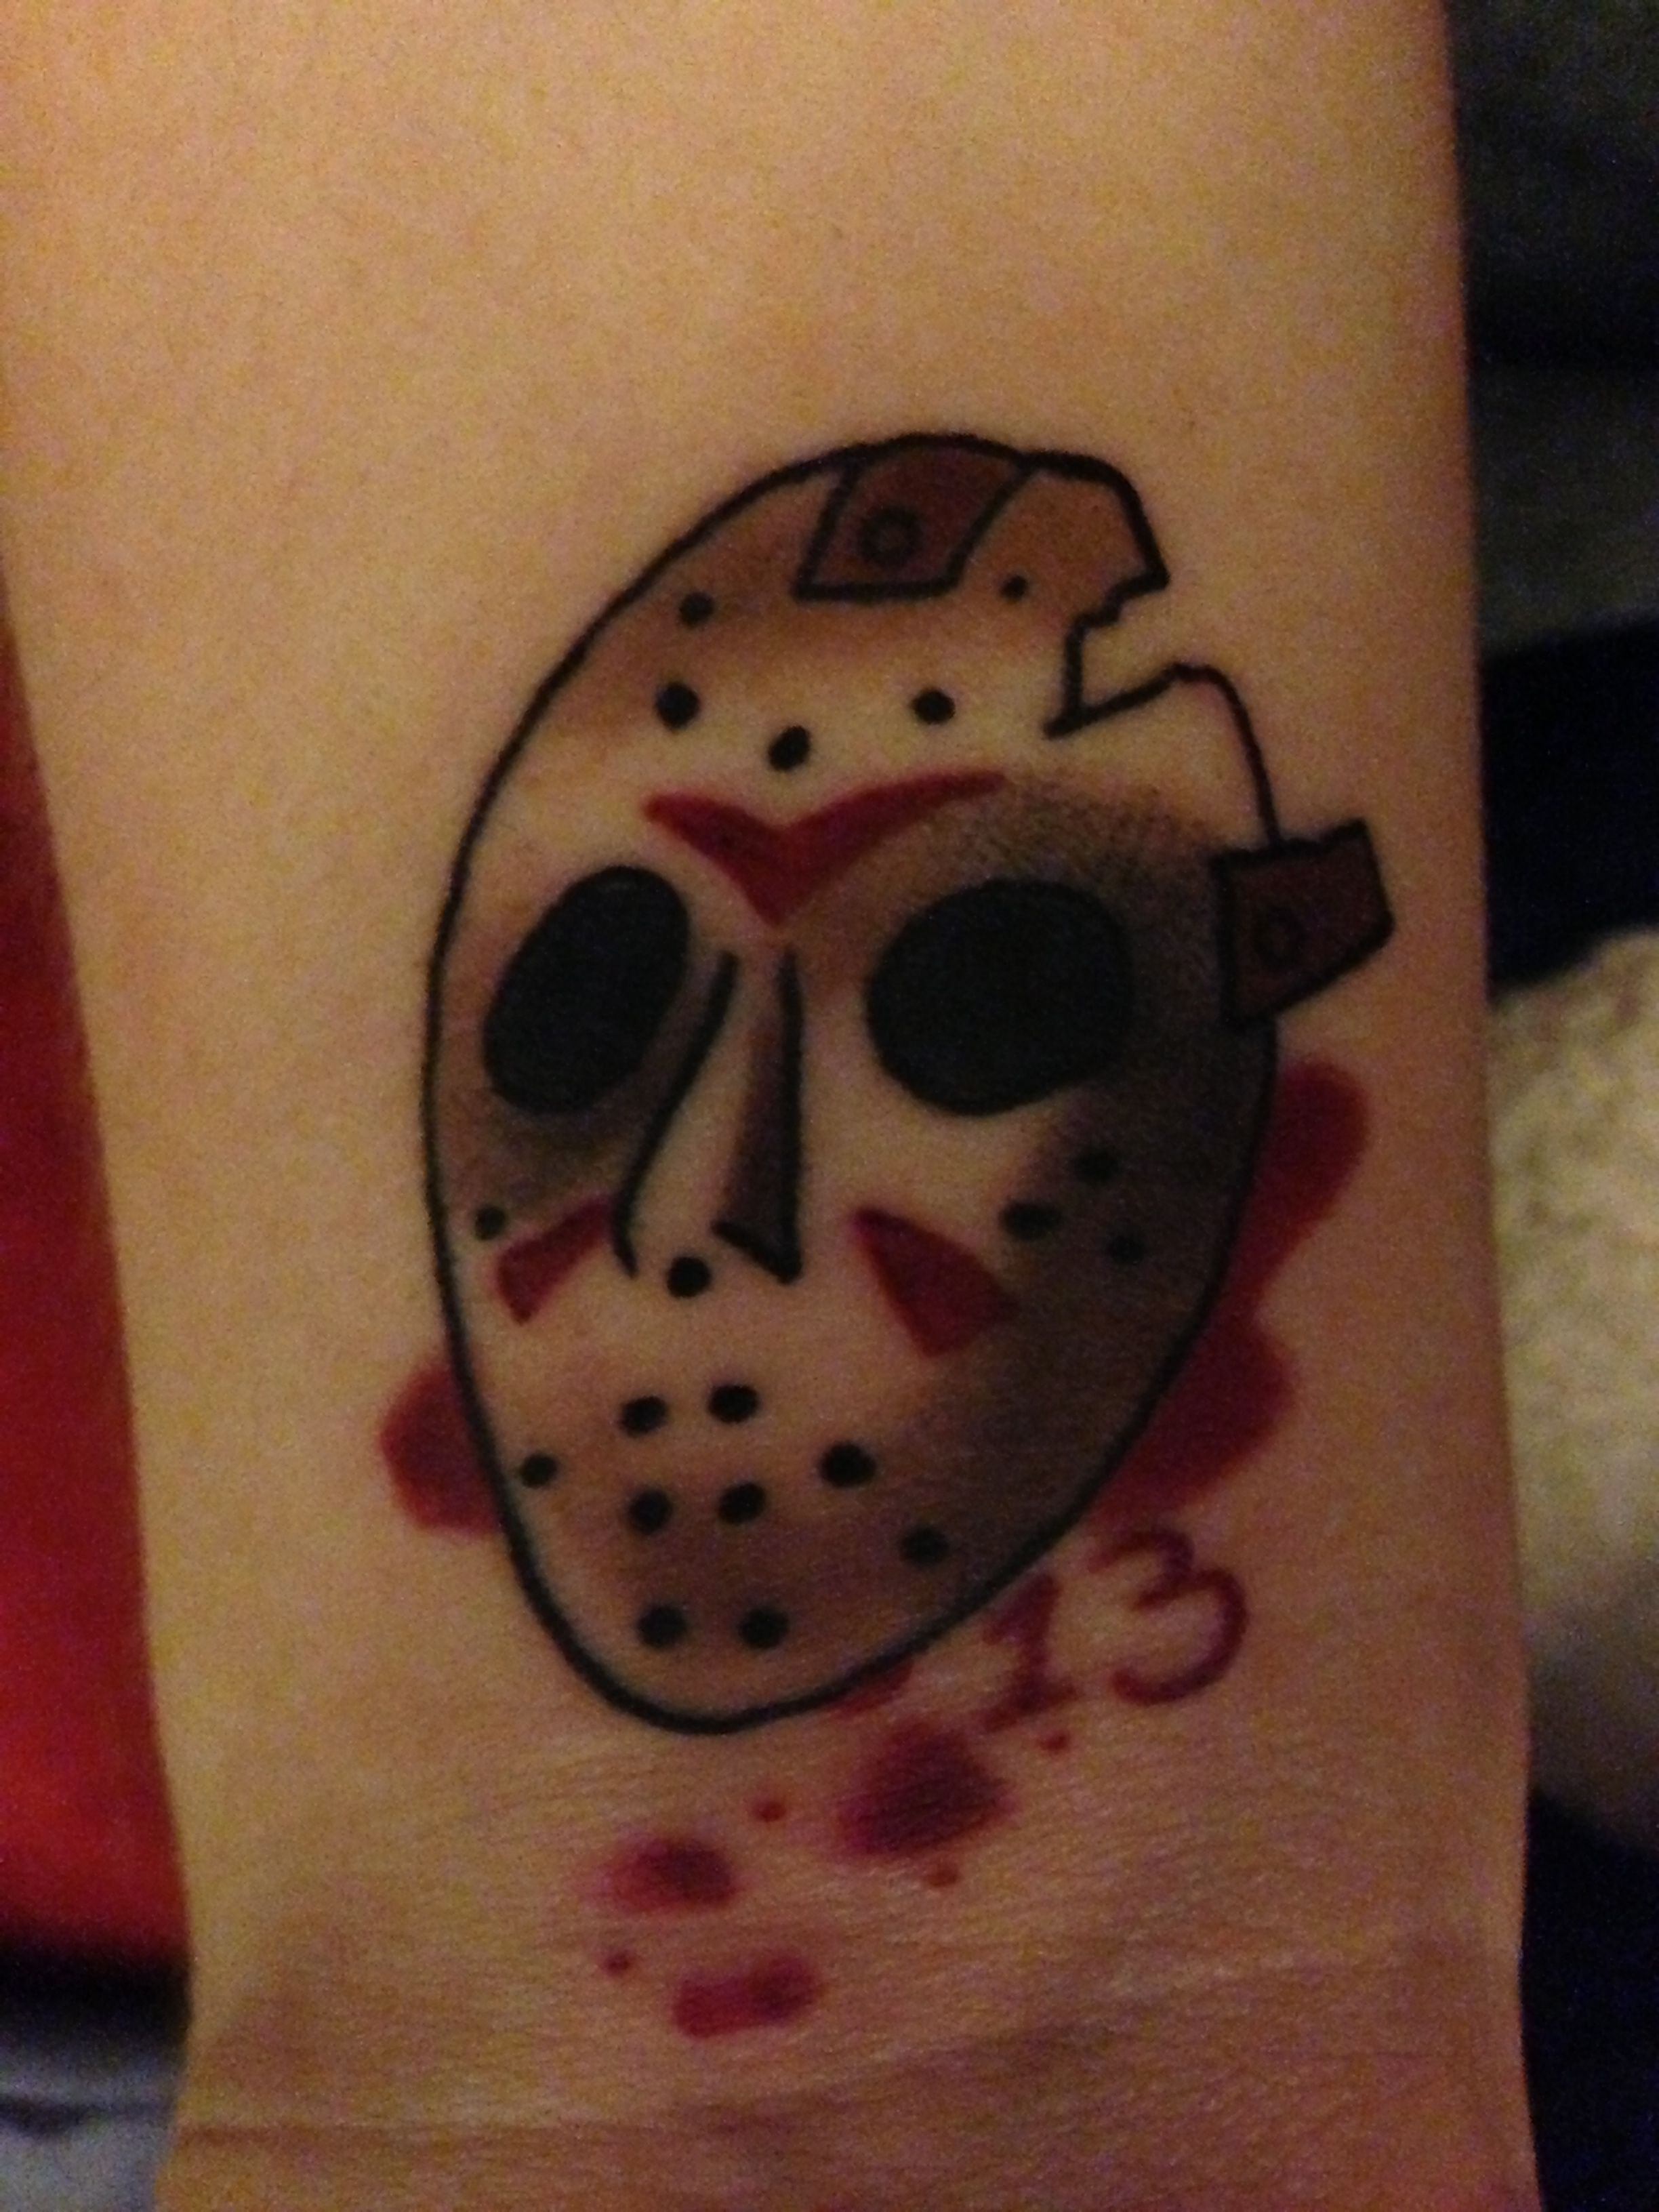 Flash art friday the 13th tattoo shop special on 13s